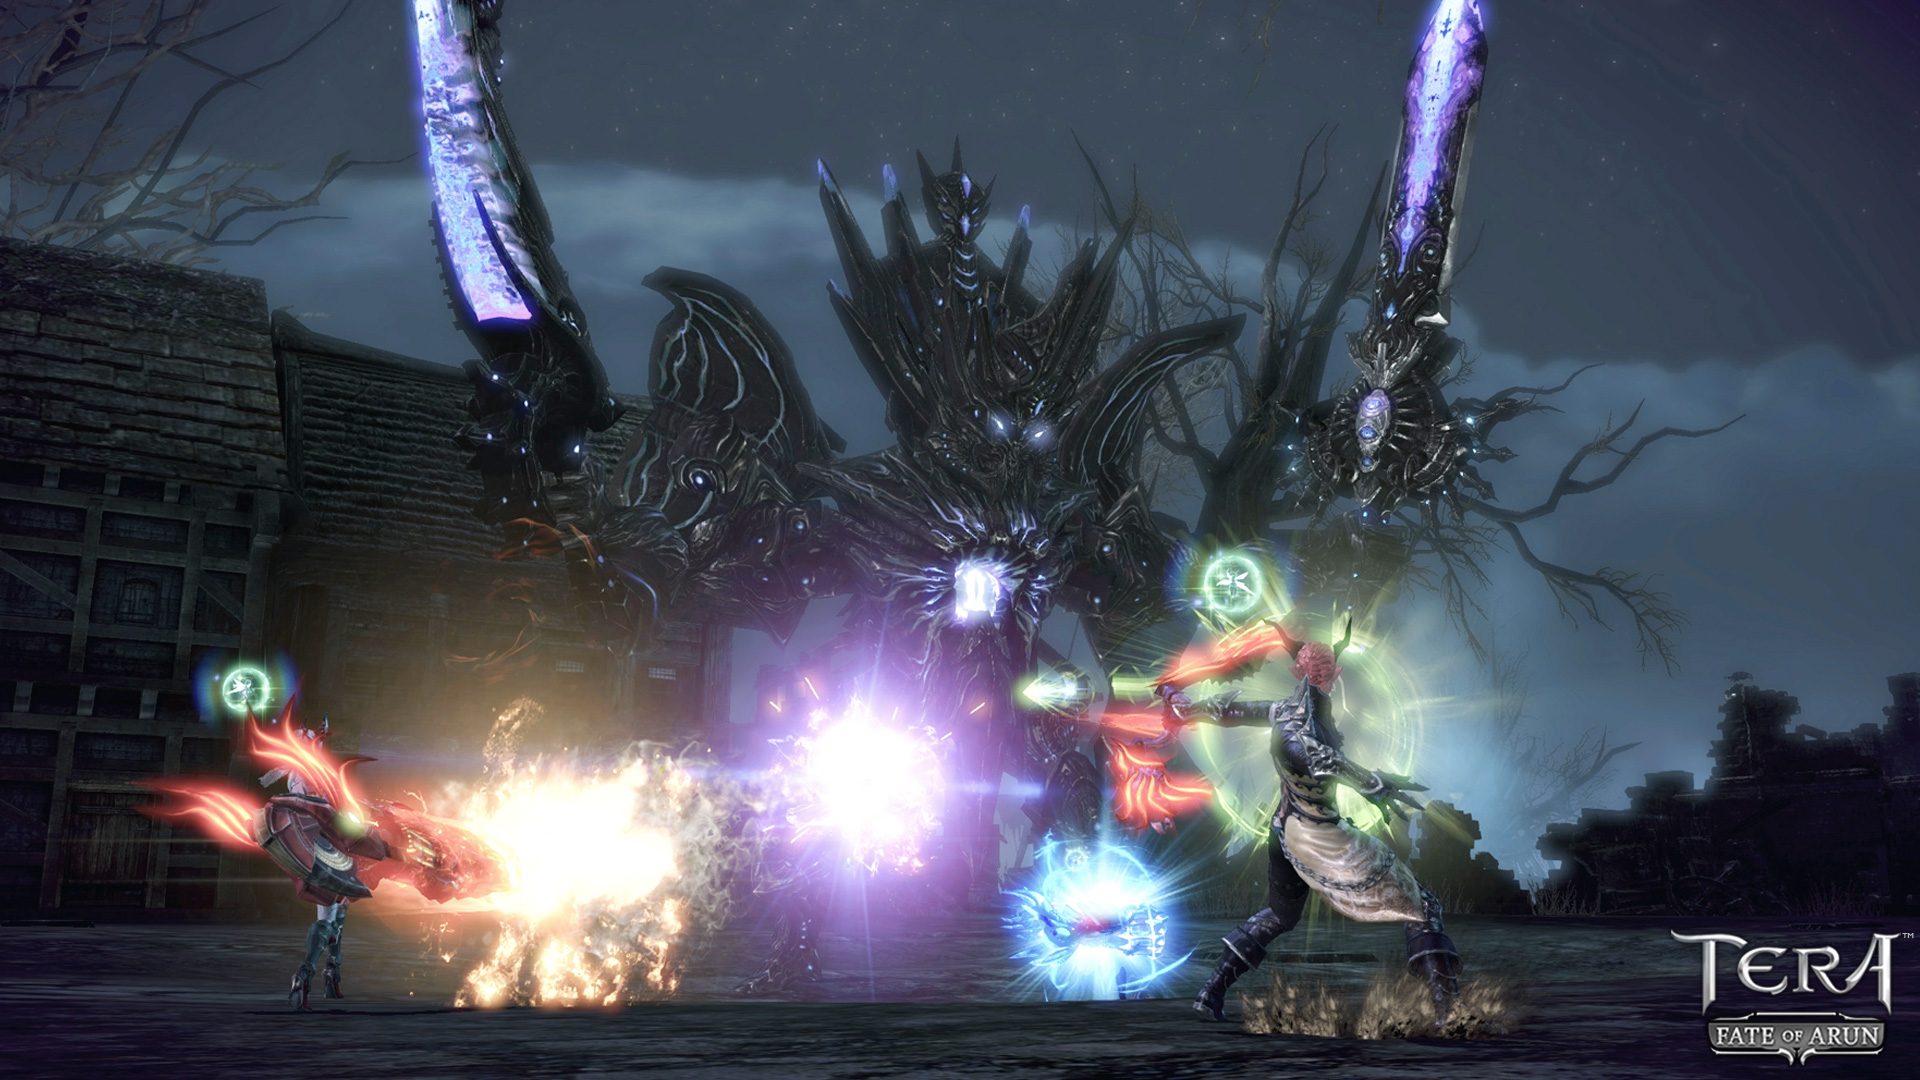 New Content for Tera: Fate of Arun